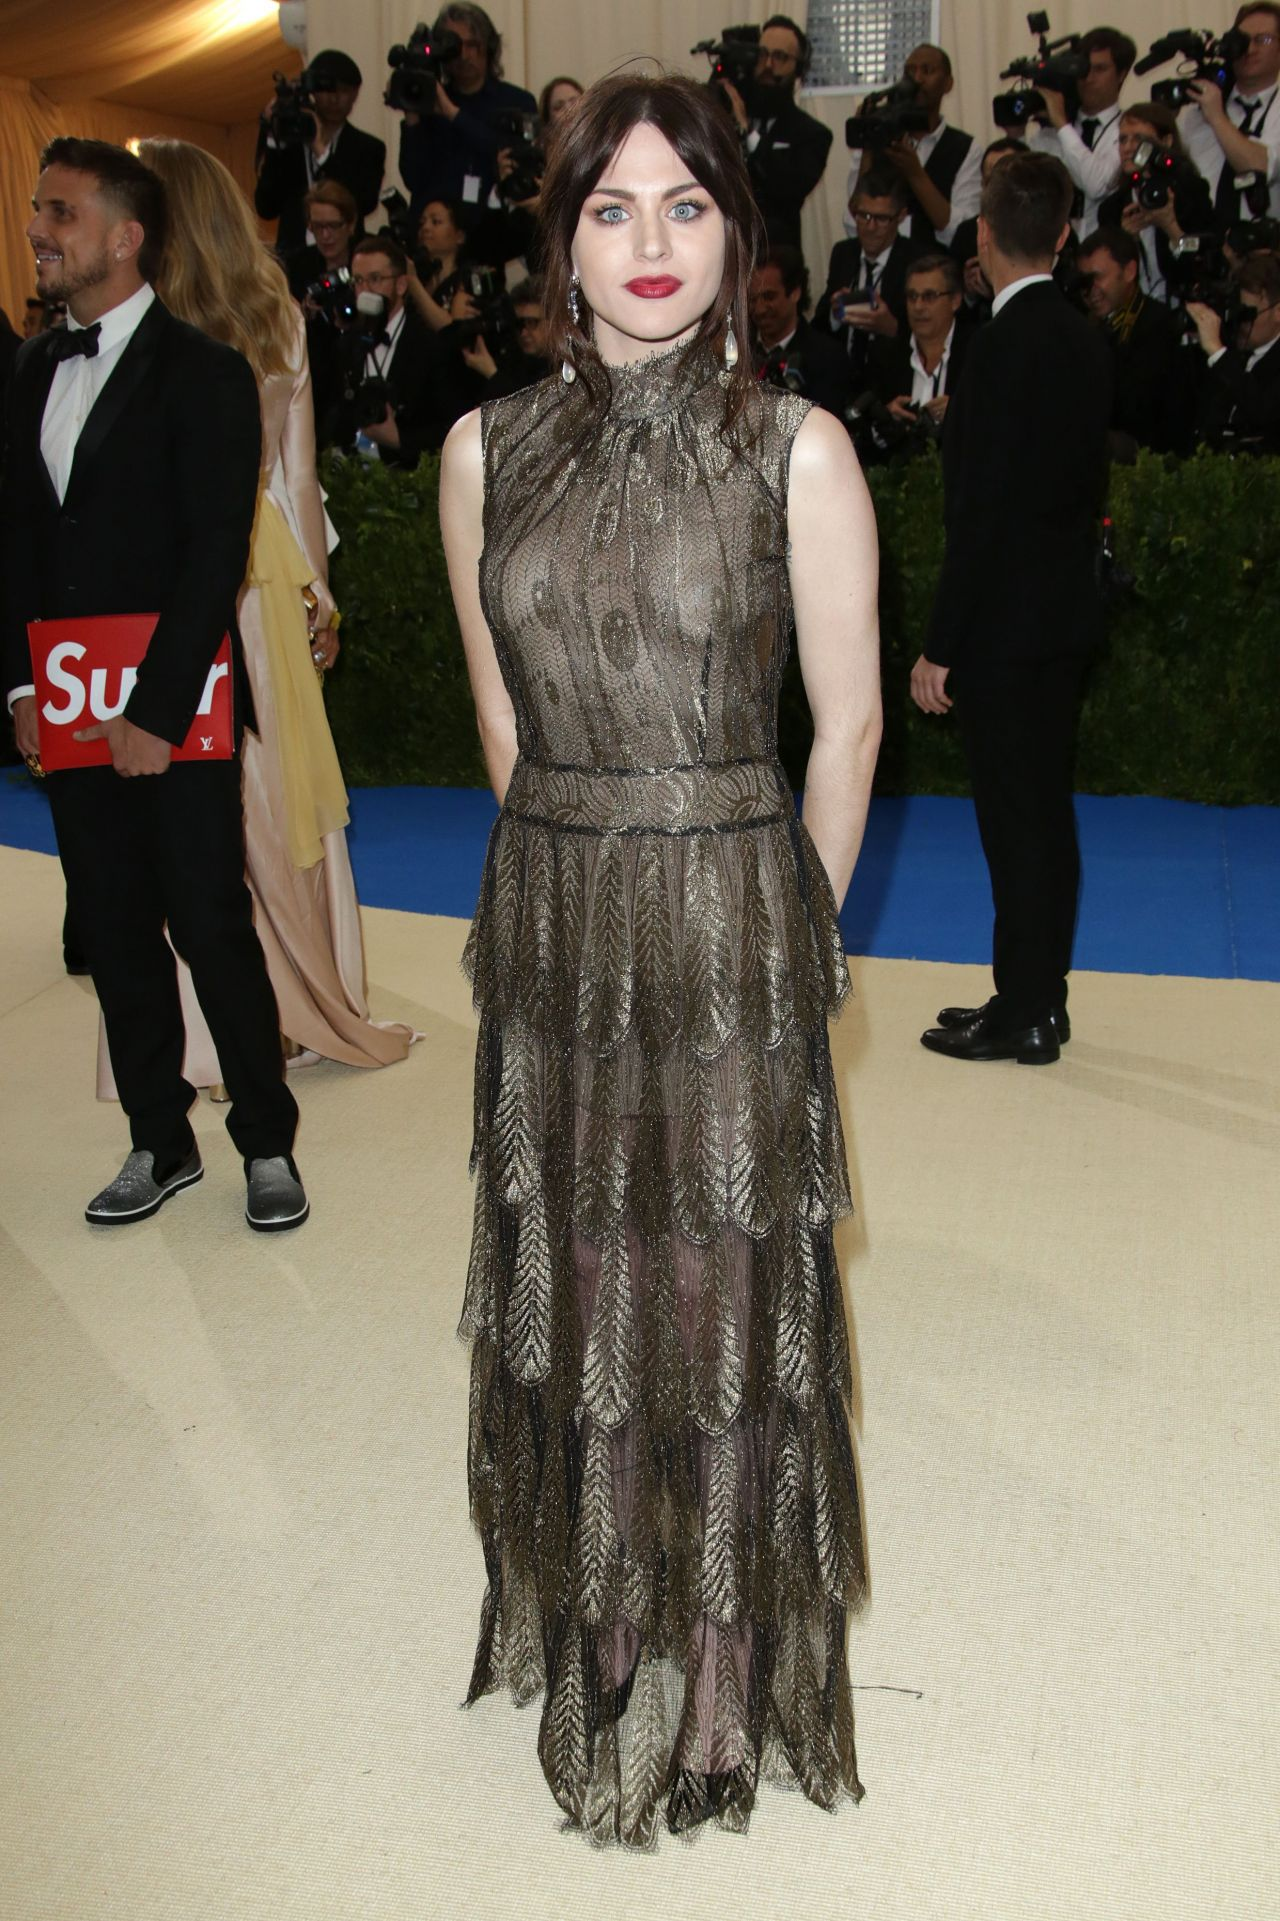 Frances bean cobain at met costume institute gala in new york naked (68 photo), Selfie Celebrites picture